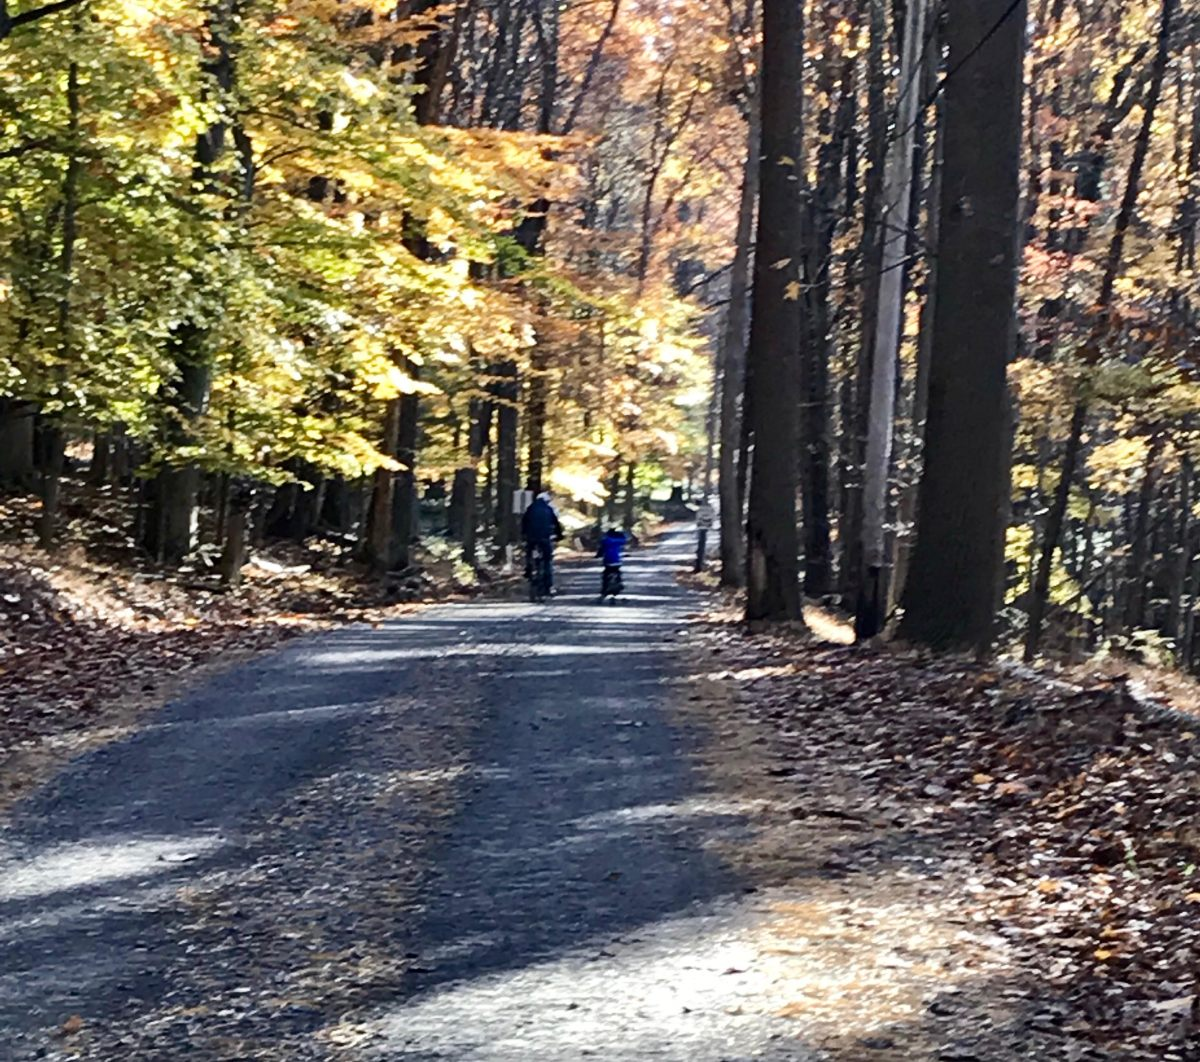 A little boy and a baby enjoying Carversville, PA on a brisk Autumn Sunday afternoon!